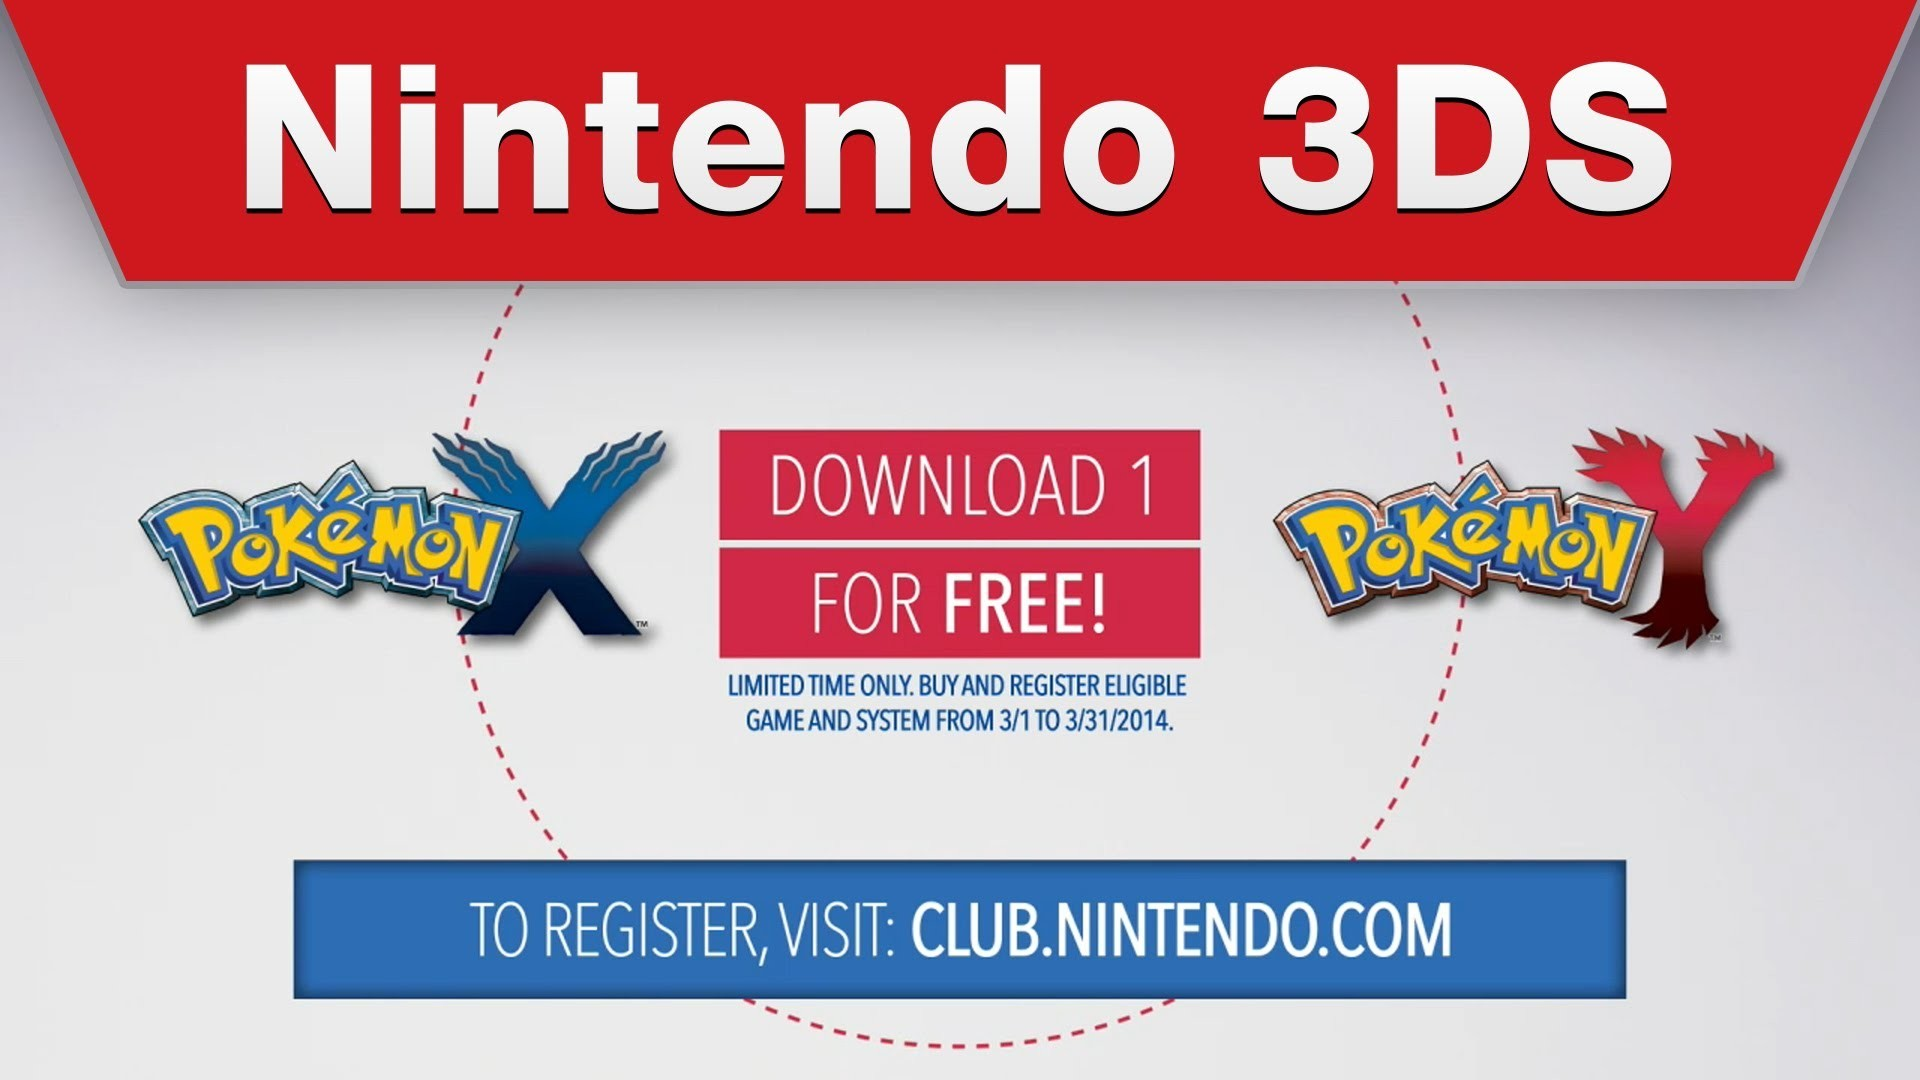 nintendo 3ds download code free